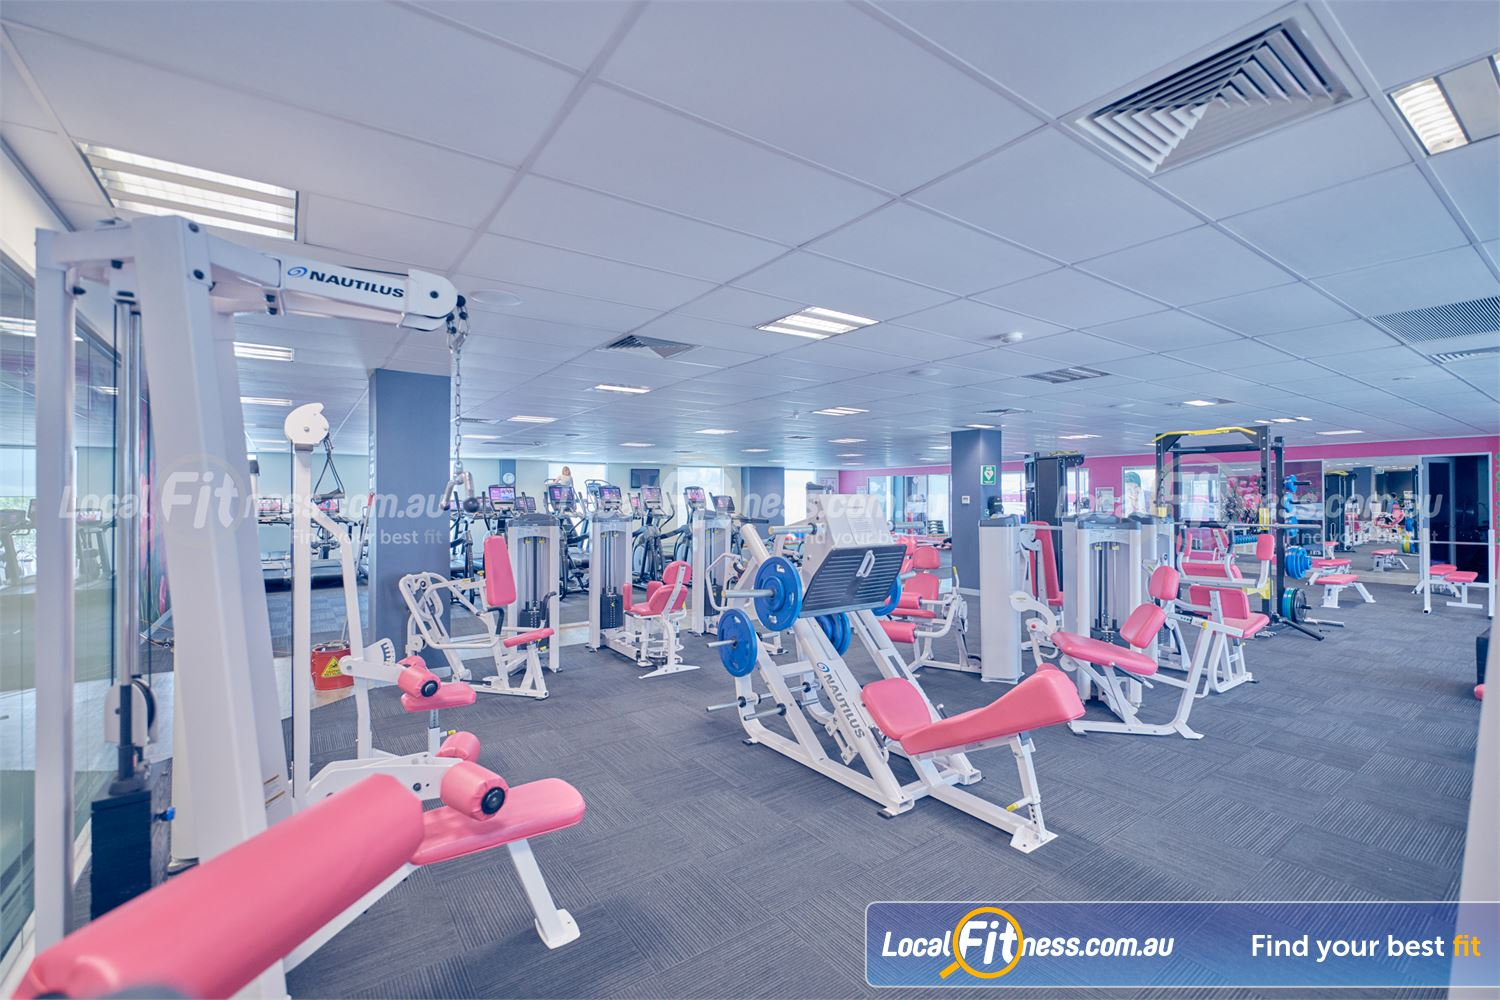 Fernwood Fitness Cairnlea Fernwood Cairnlea Women's gym provides a fully equipped state of the art facility.